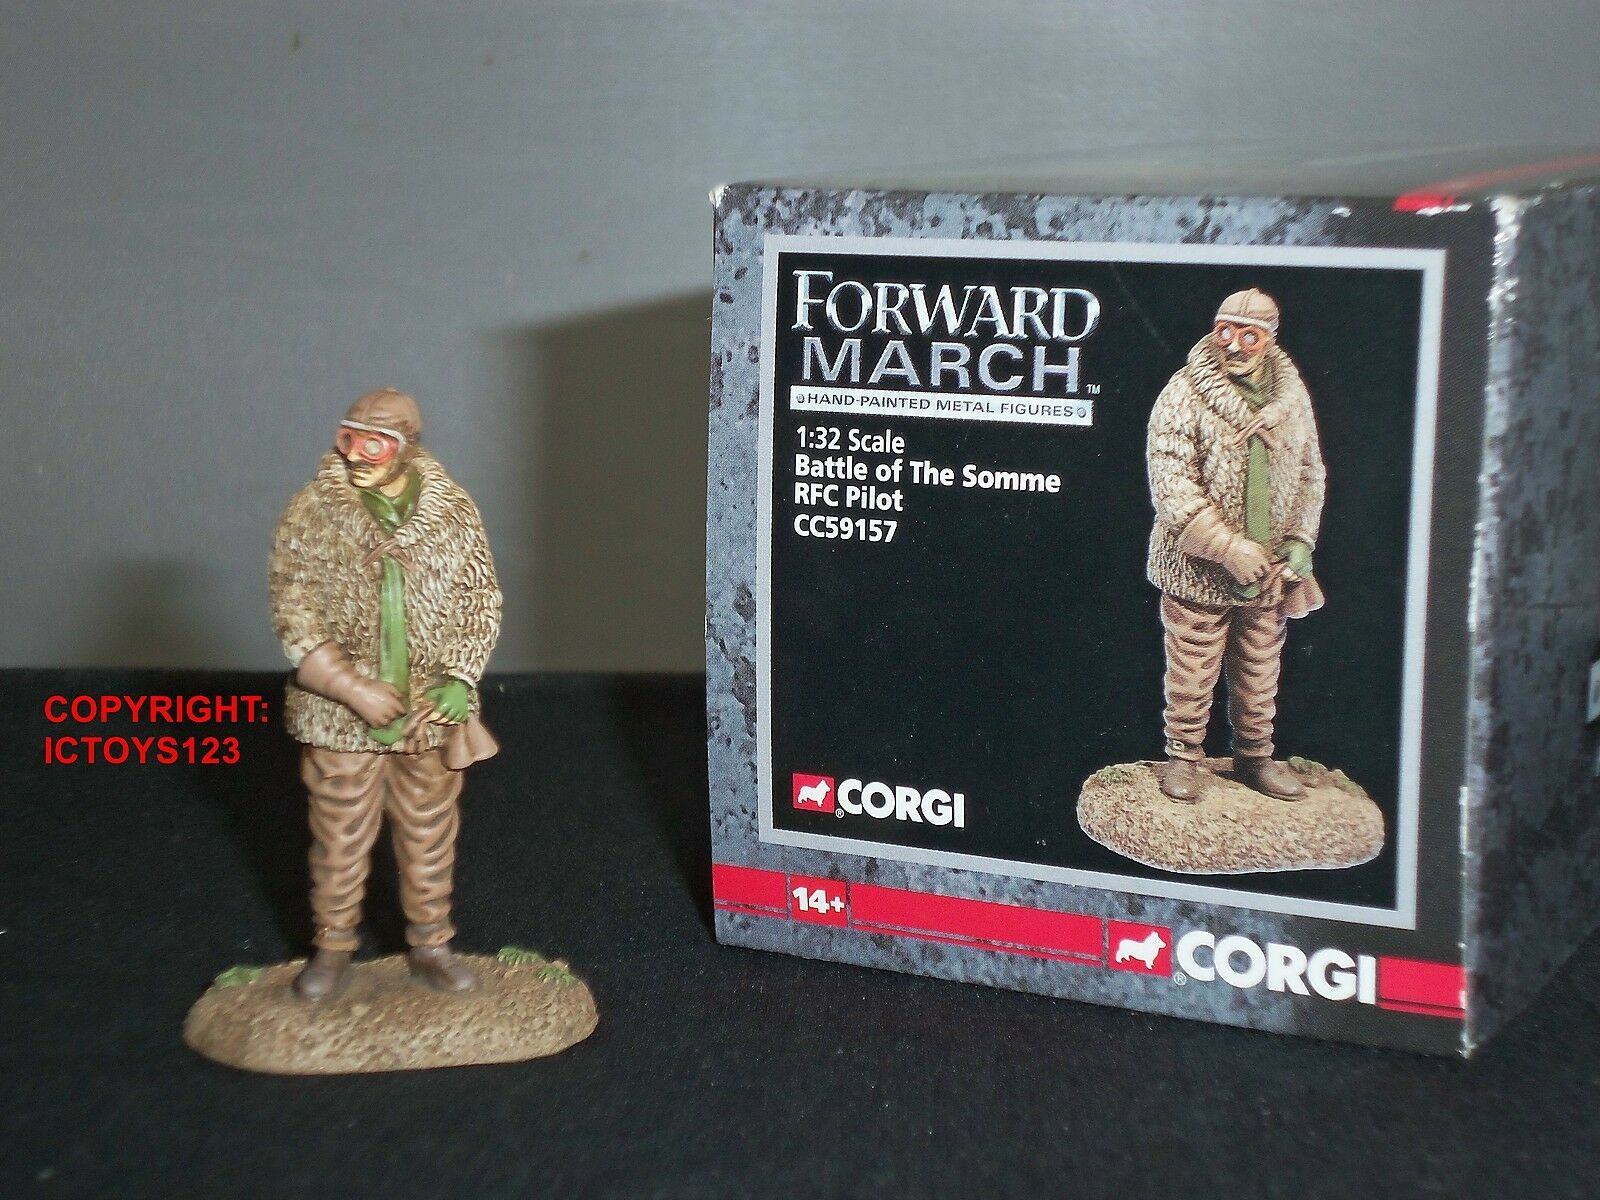 CORGI CC59157 FORWARD MARCH RFC PILOT BATTLE OF THE SOMME METAL TOY SOLDIER